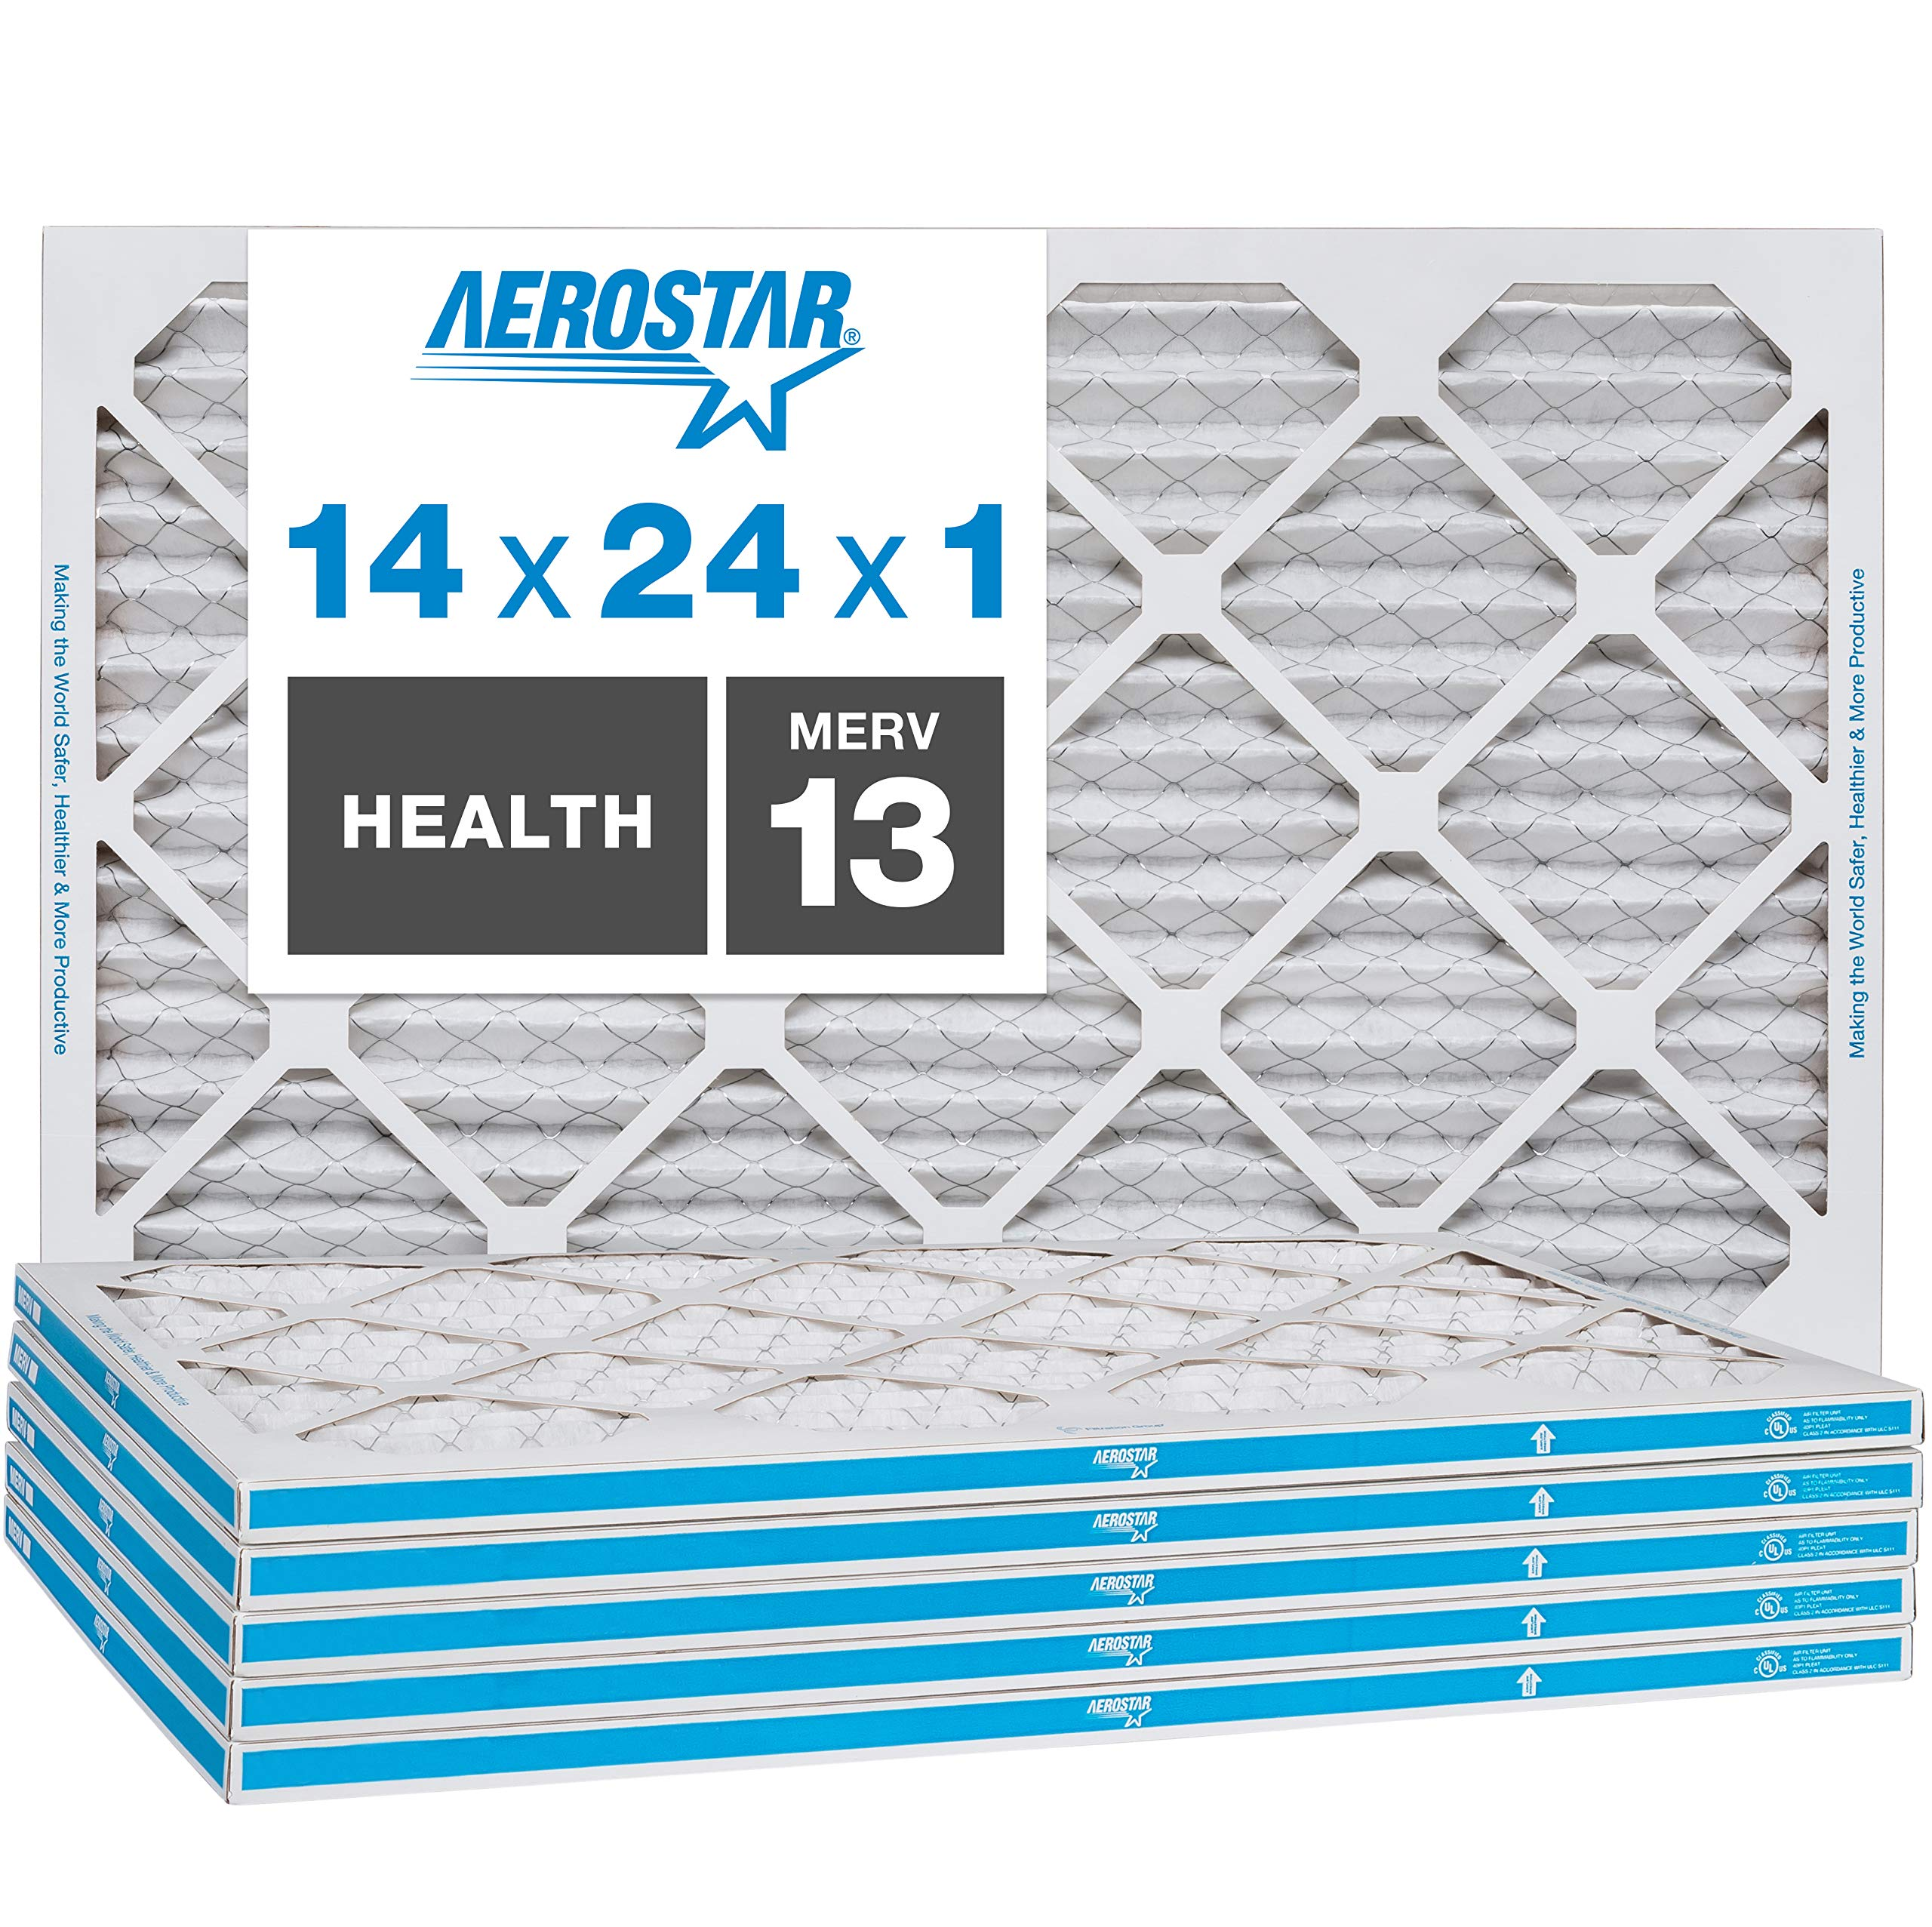 Aerostar Home Max 14x24x1 MERV 13 Pleated Air Filter, Made in the USA, Captures Virus Particles, 6-Pack